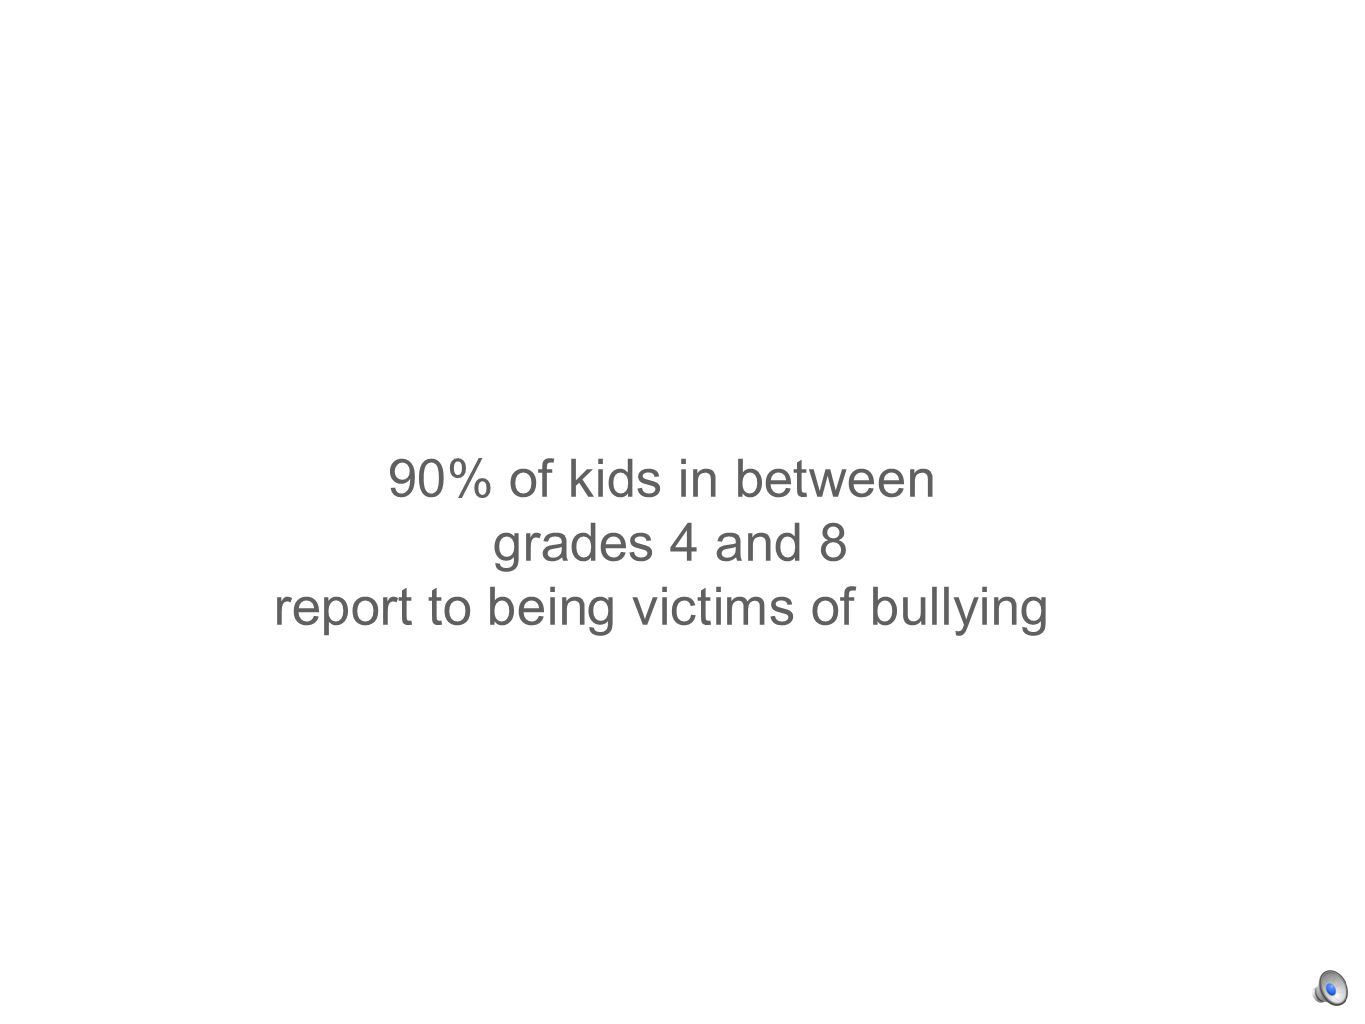 90% of kids in between grades 4 and 8 report to being victims of bullying